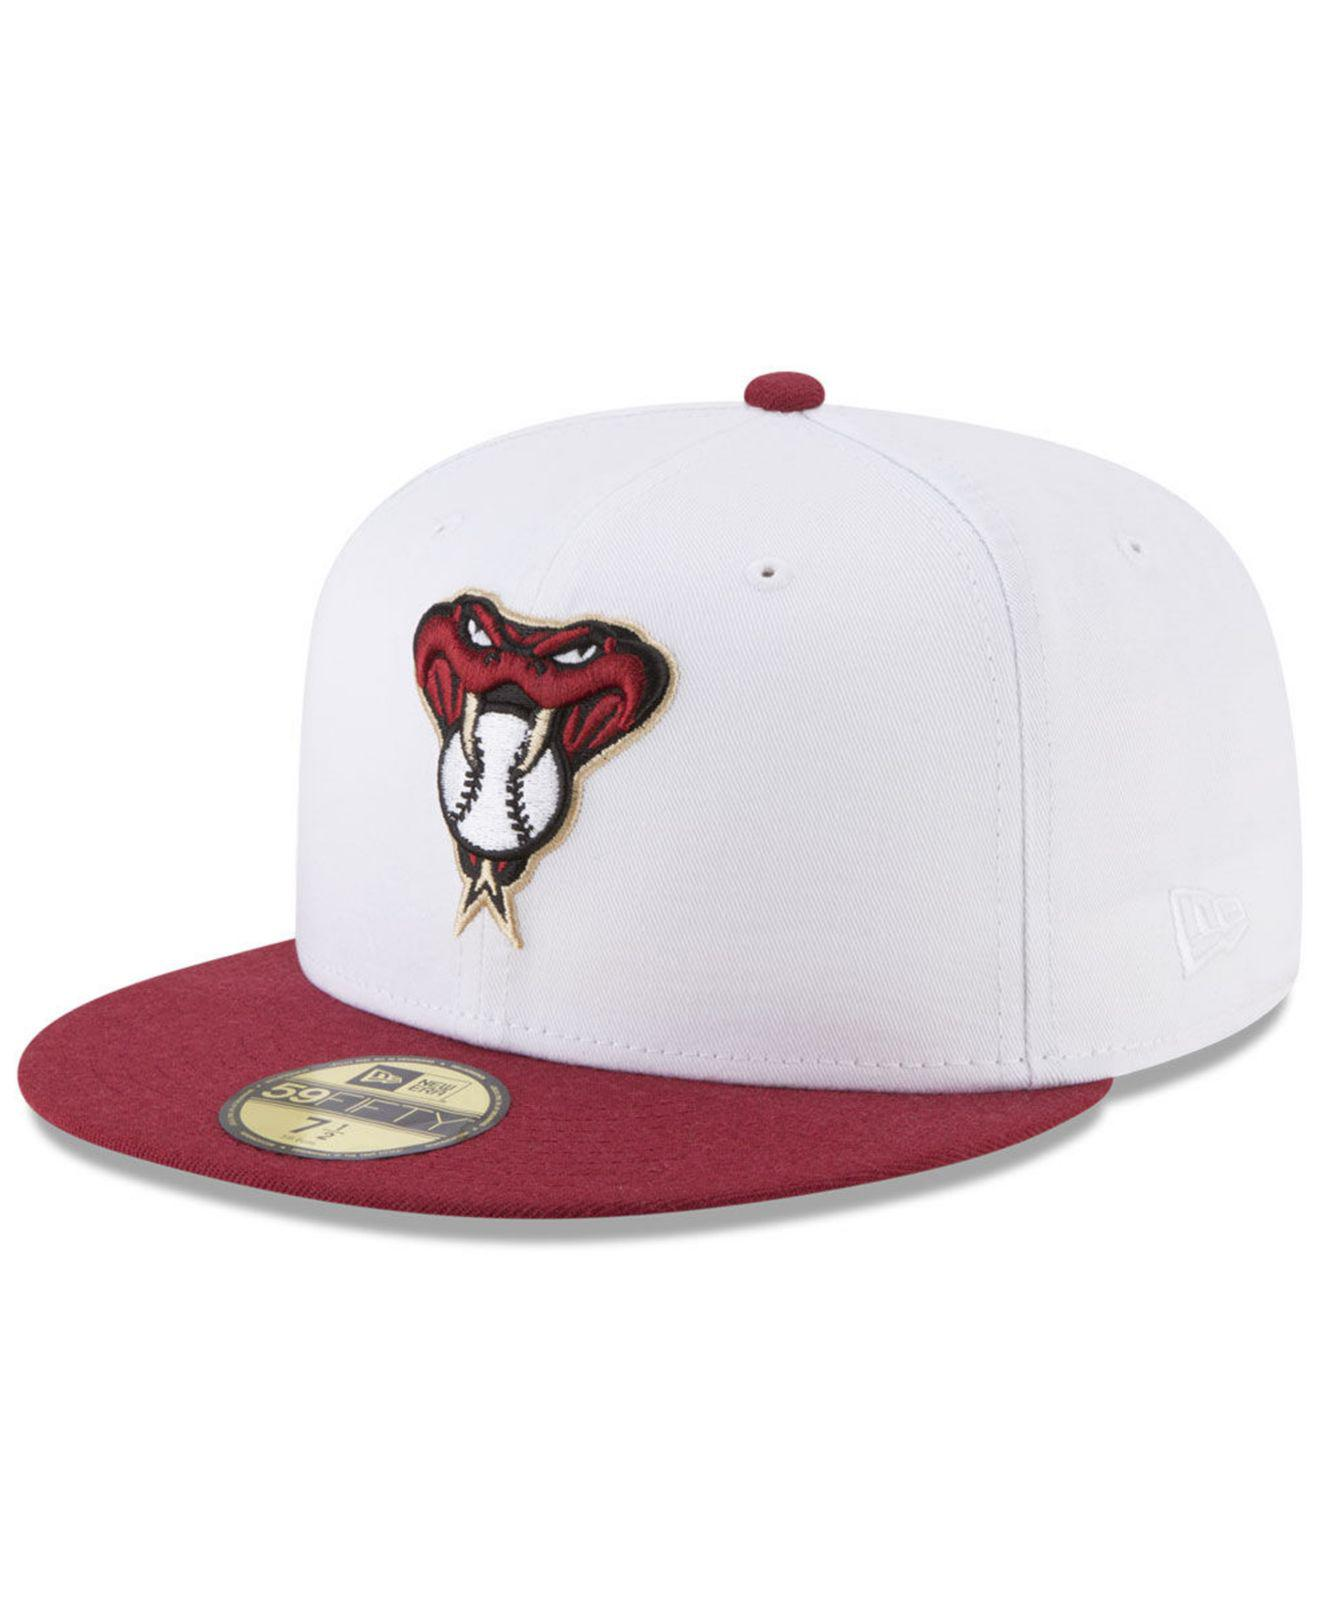 07f62ebe075 KTZ. Men s White Arizona Diamondbacks Batting Practice Wool Flip 59fifty  Fitted Cap